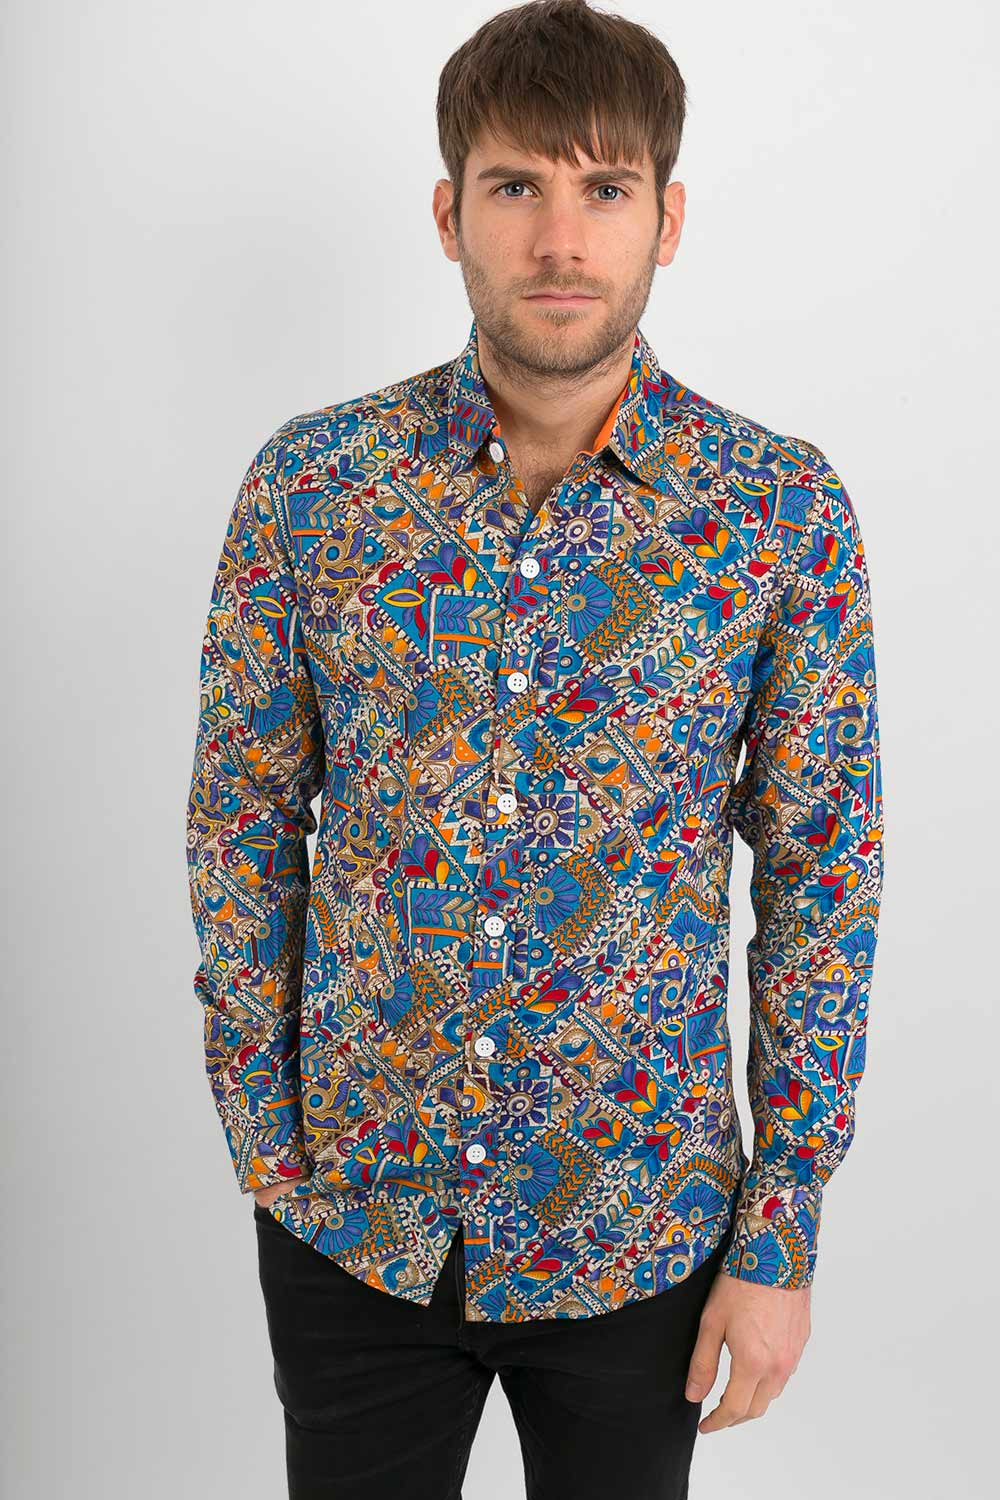 Blue Multi Coloured  Print Cotton Slim Fit Mens Shirt Long Sleeve - Avalonia, Avalonia - Avalonia